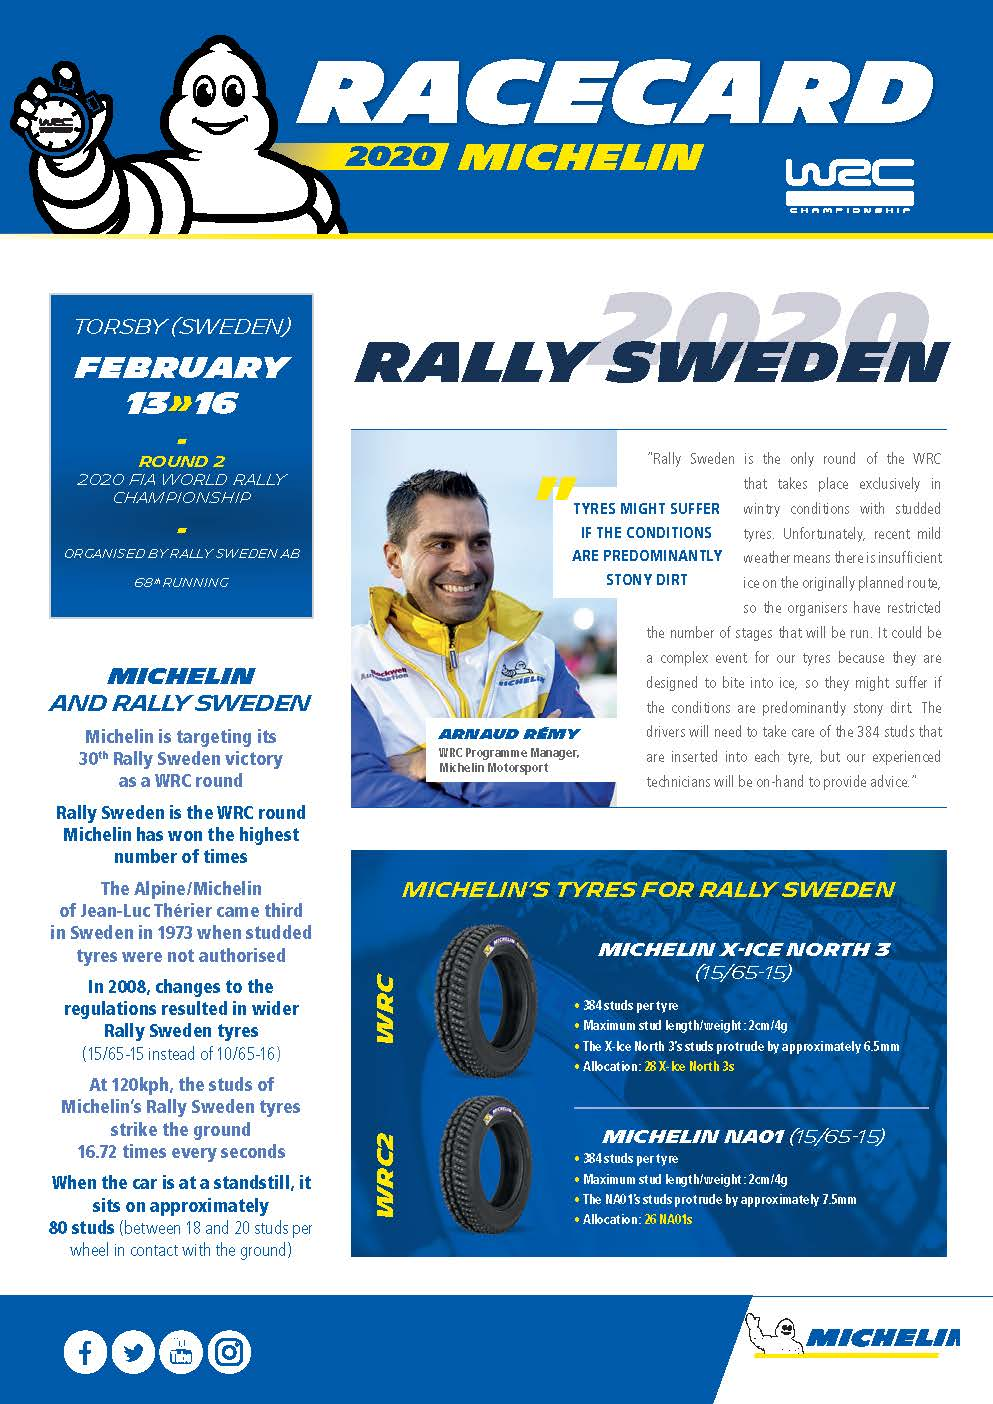 WRC_Racecard_Sweden2020_GB_Page_1